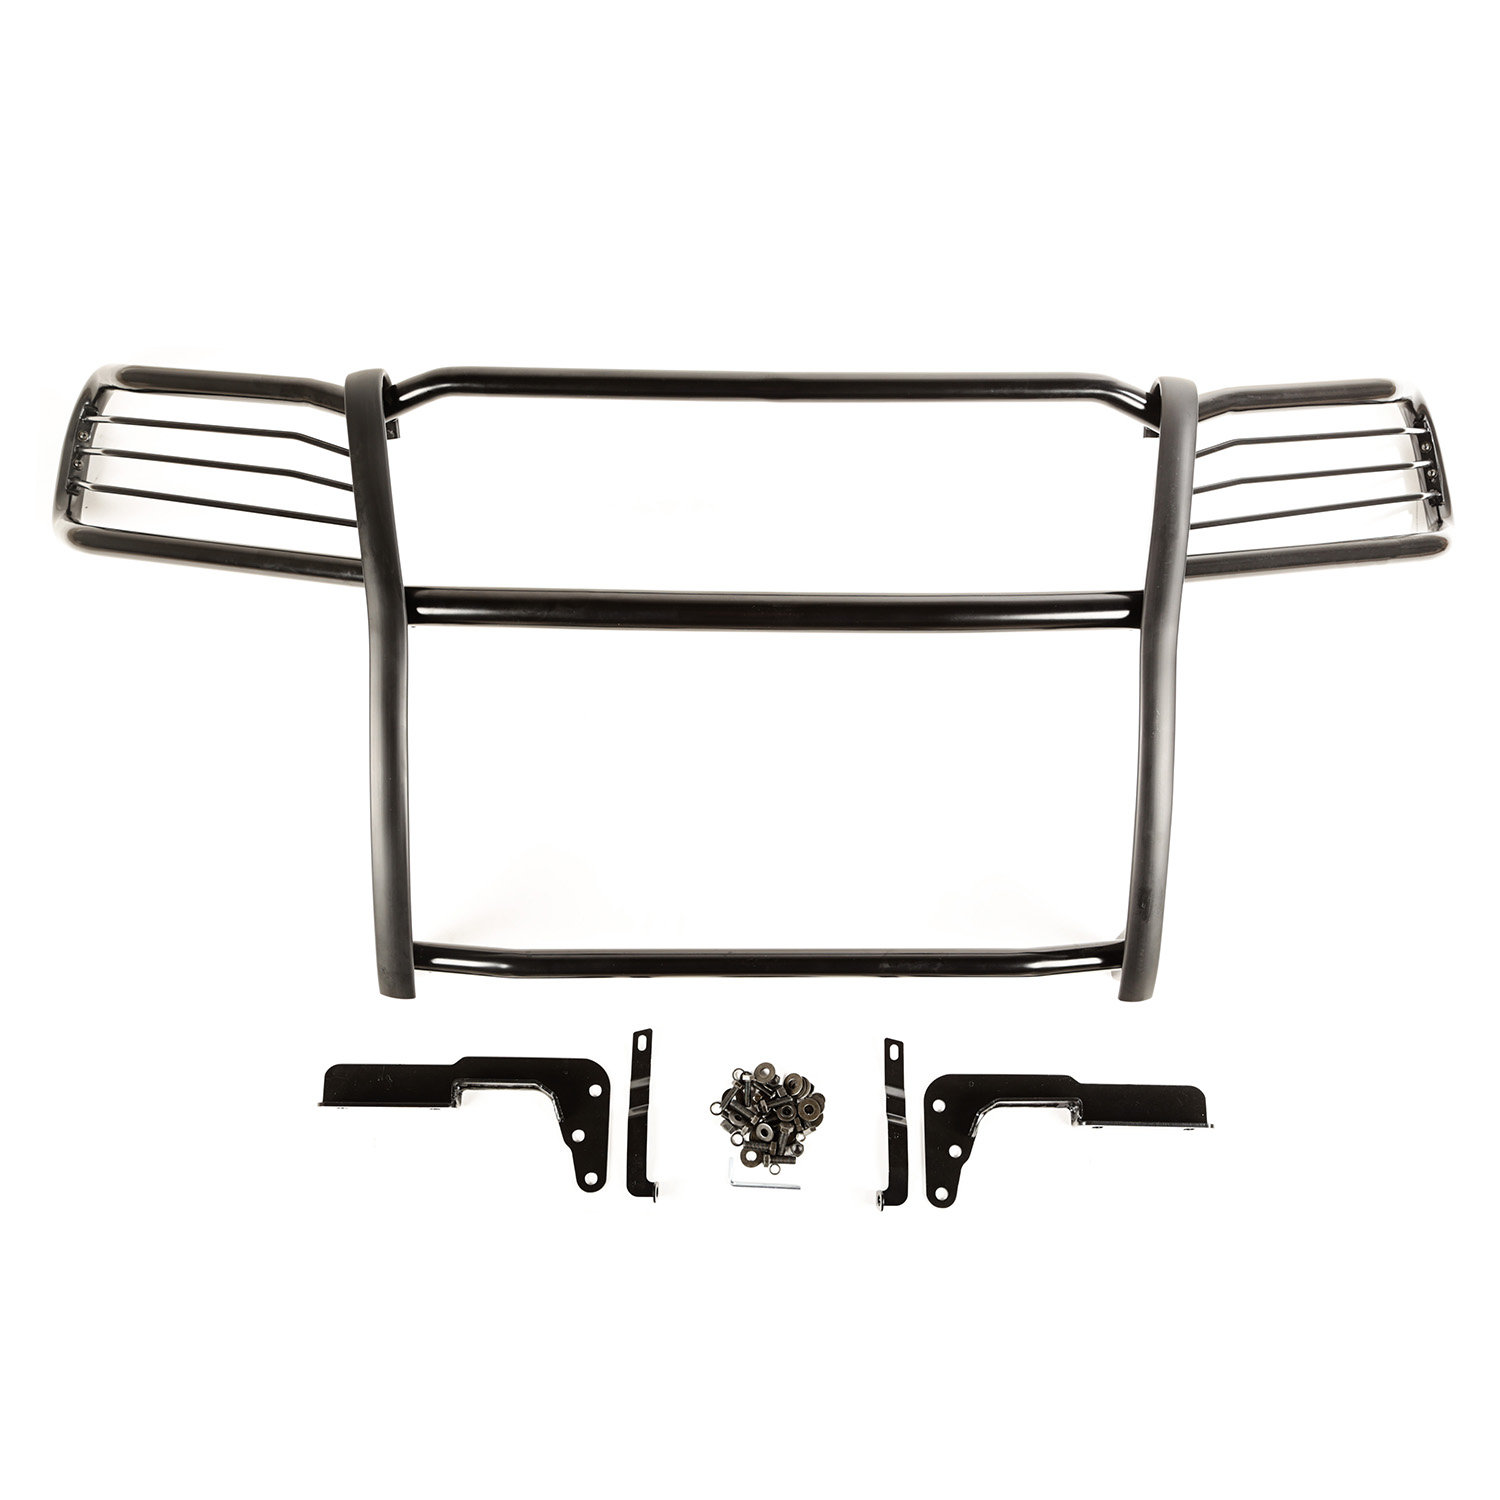 Rugged Ridge 11513.02 Grille Guard in Black for 11-18 Jeep